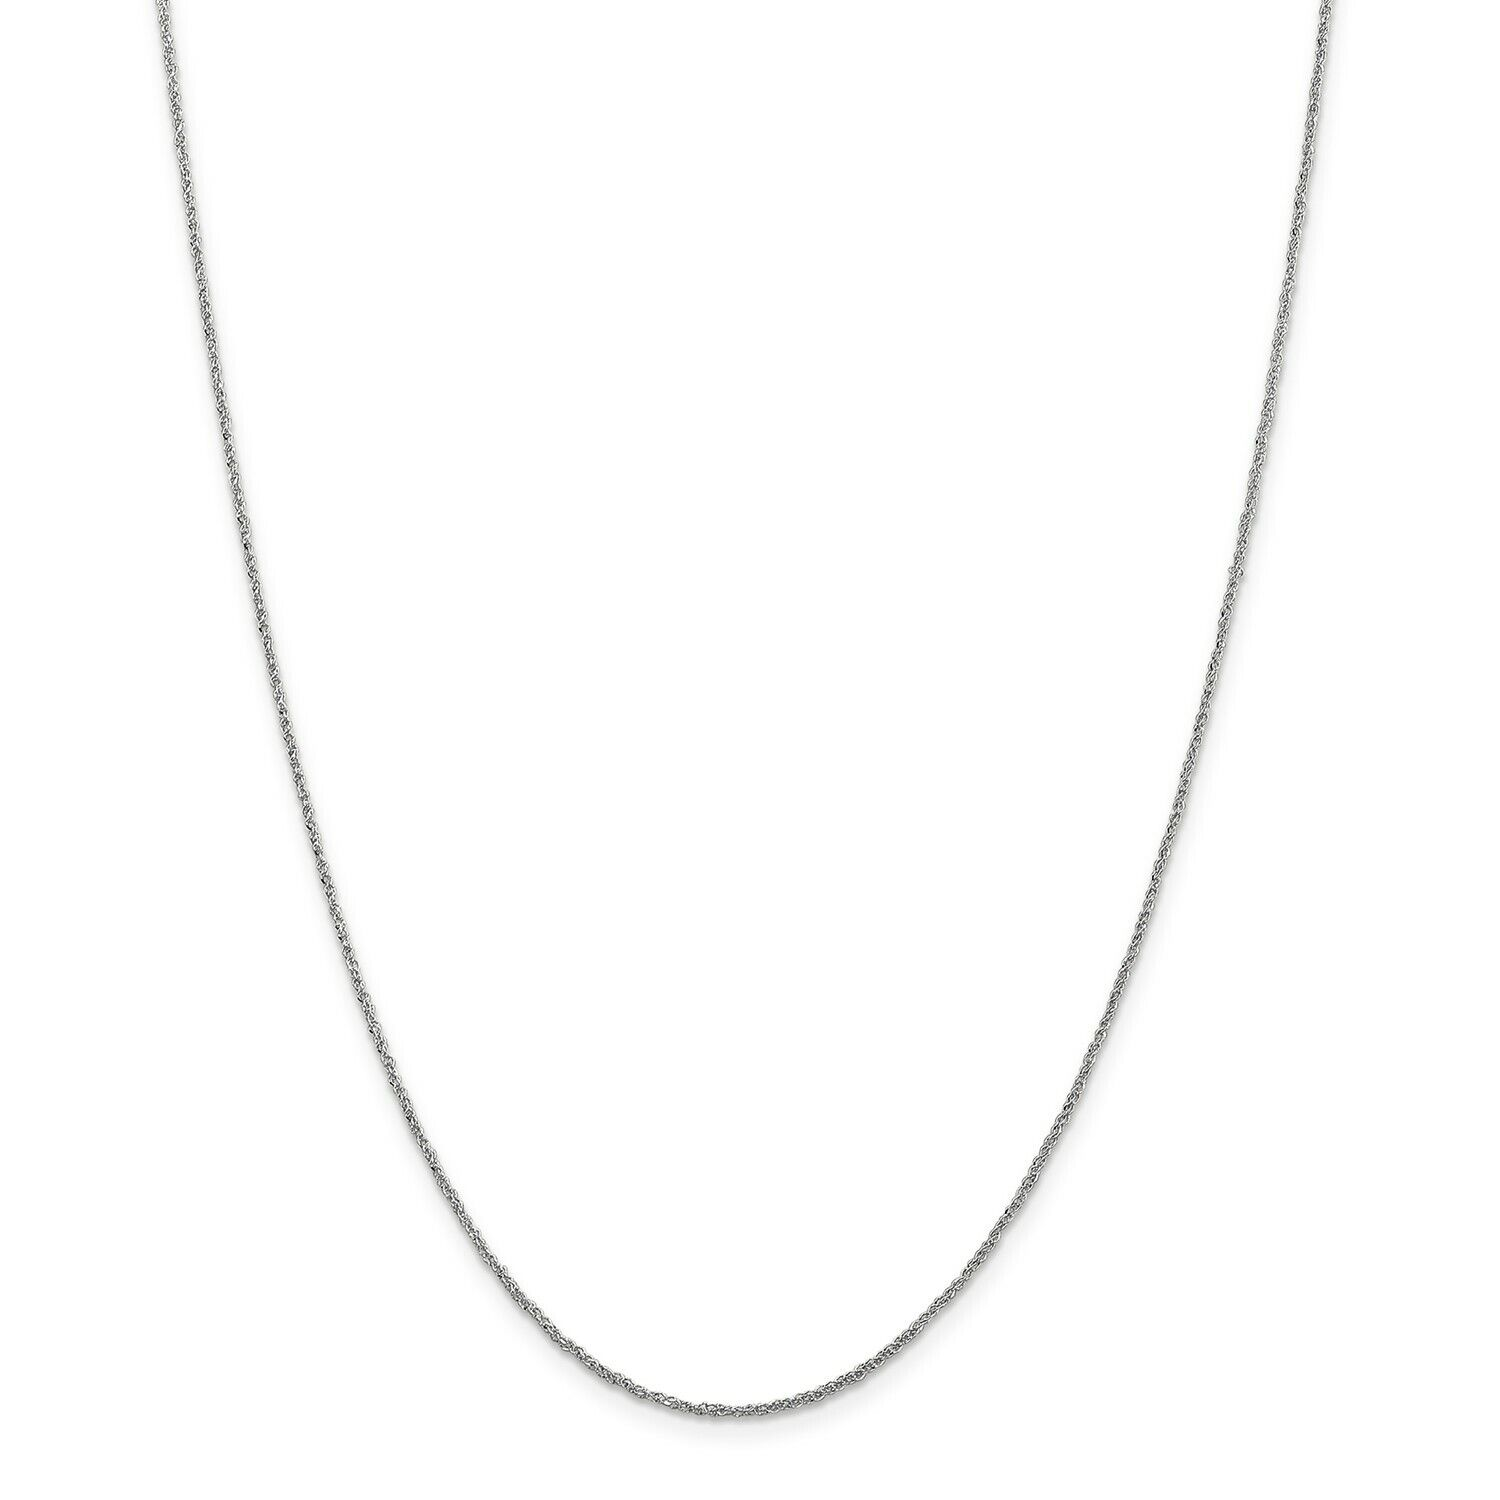 14k White gold 1.1mm Solid Polished Ropa Chain w  Spring Ring Clasp 14  - 24